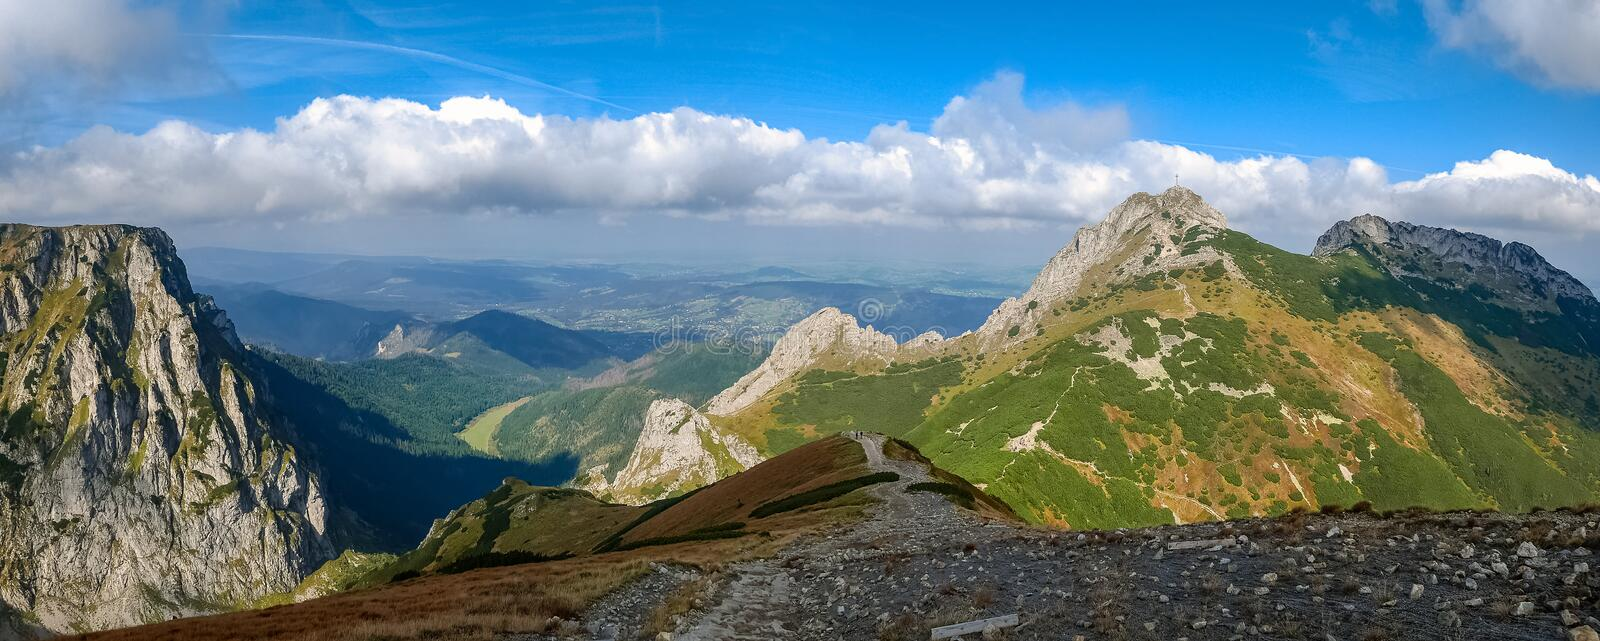 Download Giewont, Mountain In Polish Tatras With A Cross On Top, Western Tatras Mountain In Poland Stock Image - Image: 90092223